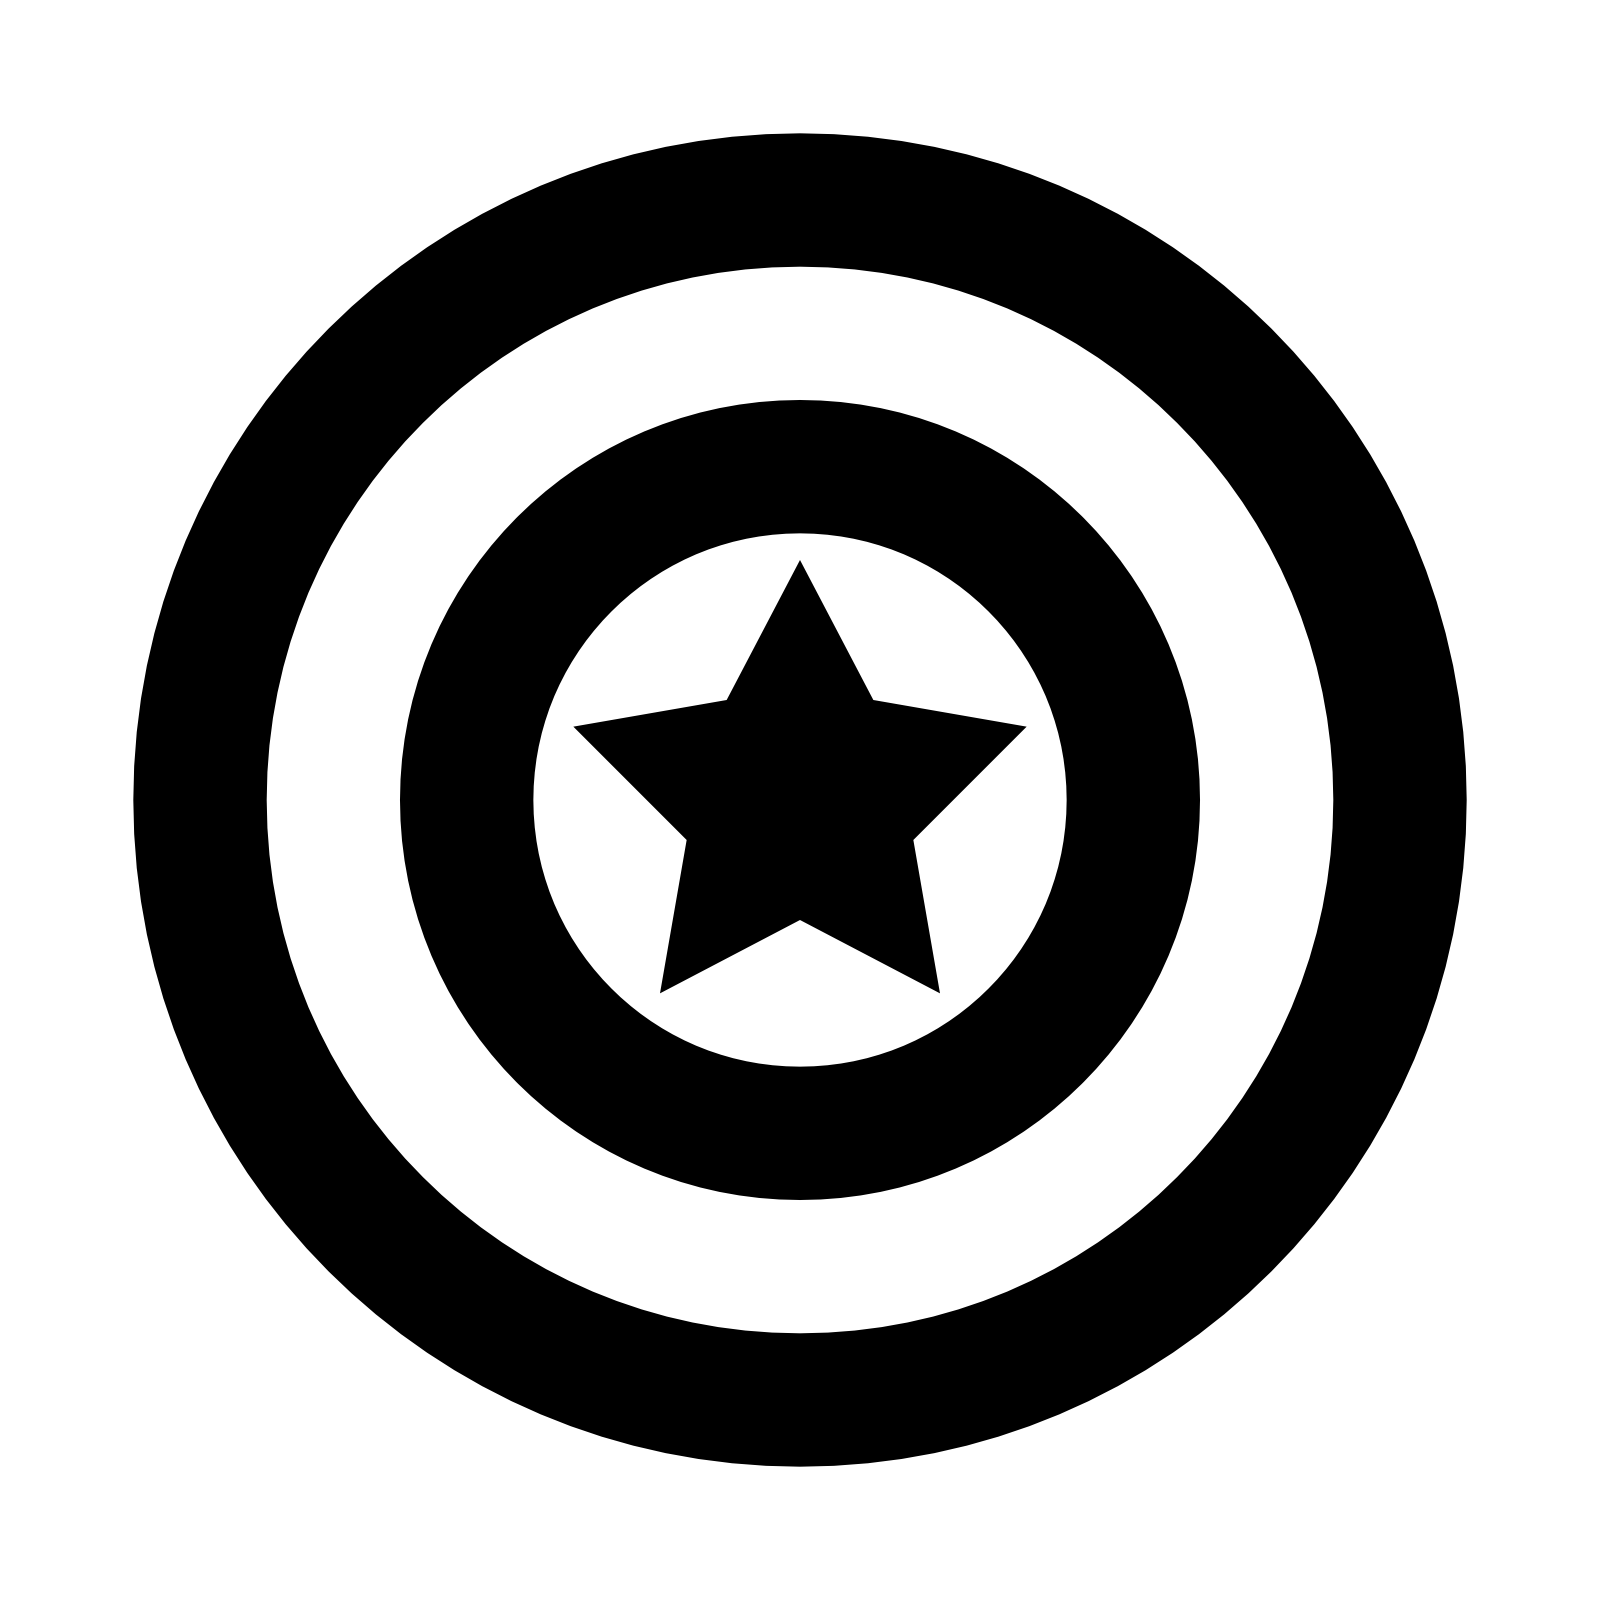 Captain America svg #4, Download drawings